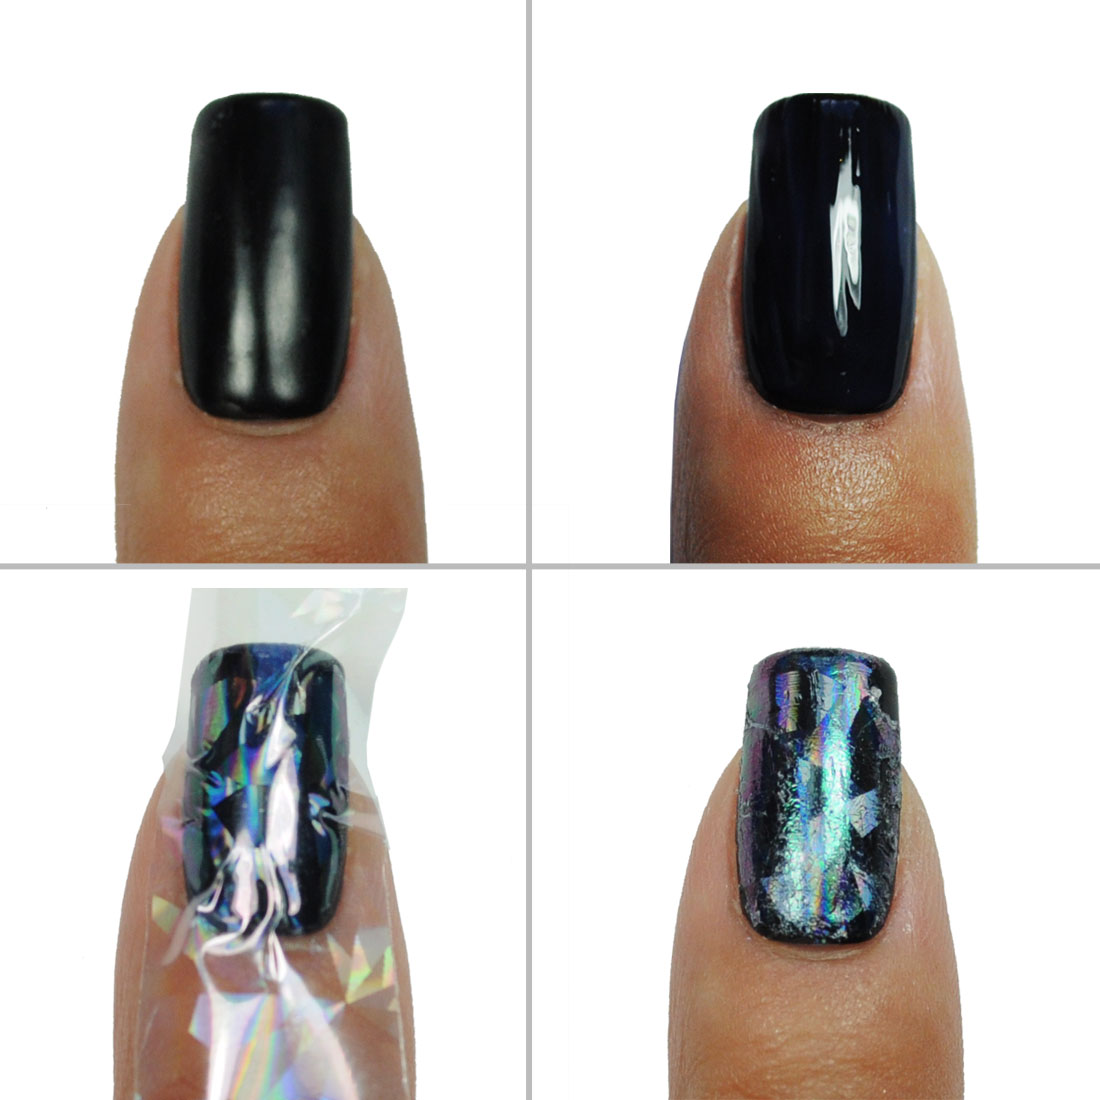 Clear Holographic Nail Art Foils - 6 Stripes with Glue - Walmart.com